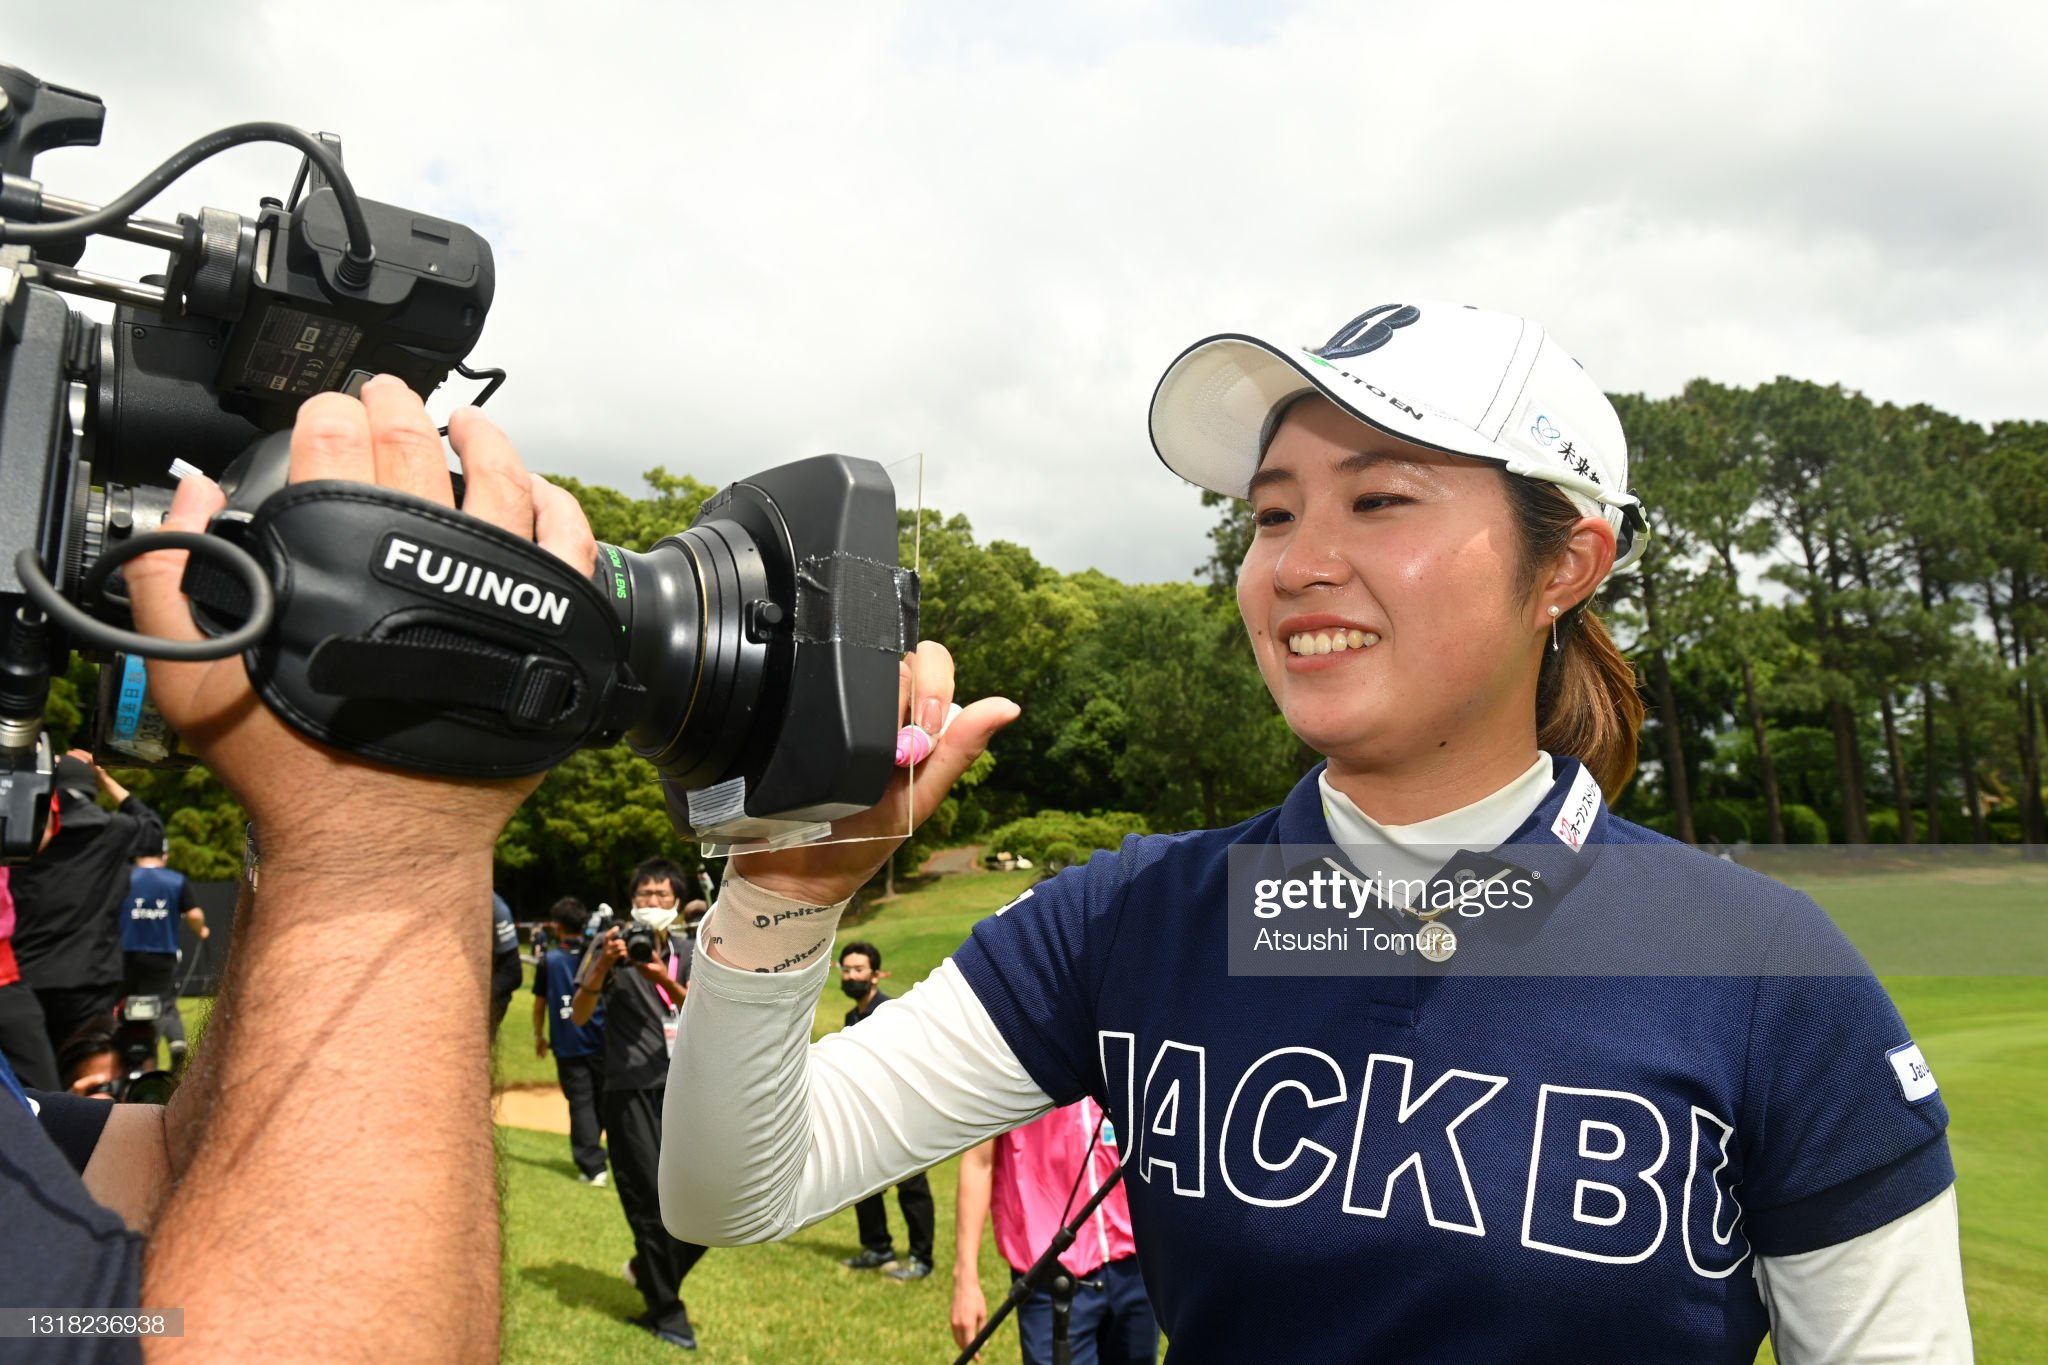 https://media.gettyimages.com/photos/momoko-osato-of-japan-signs-autograph-for-television-crews-after-the-picture-id1318236938?s=2048x2048